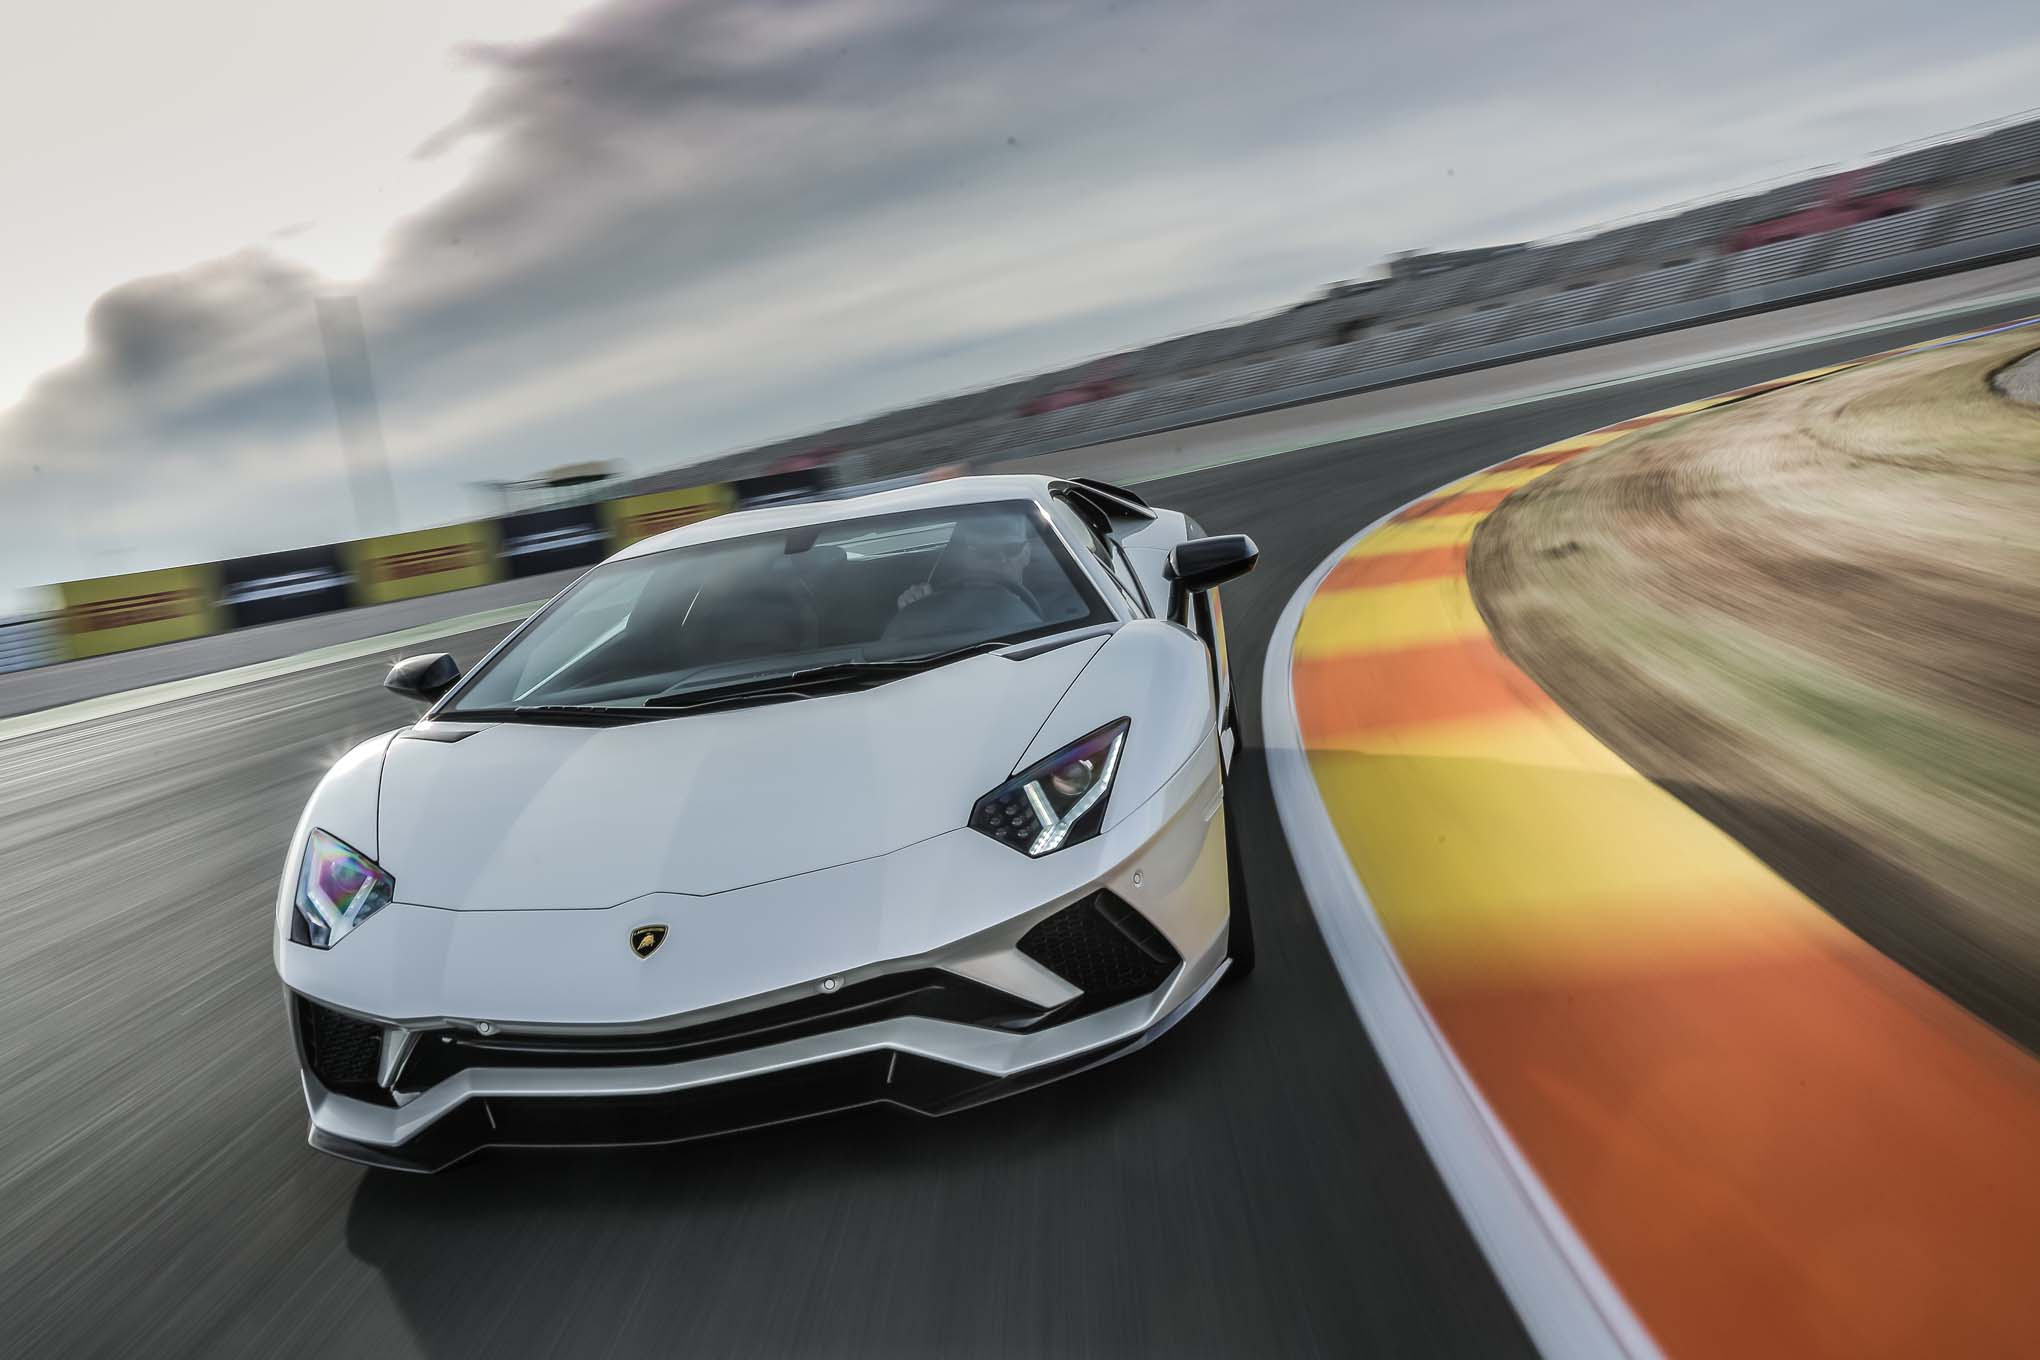 2018 Lamborghini Aventador S Front End In Motion 05 1 Motor Trend